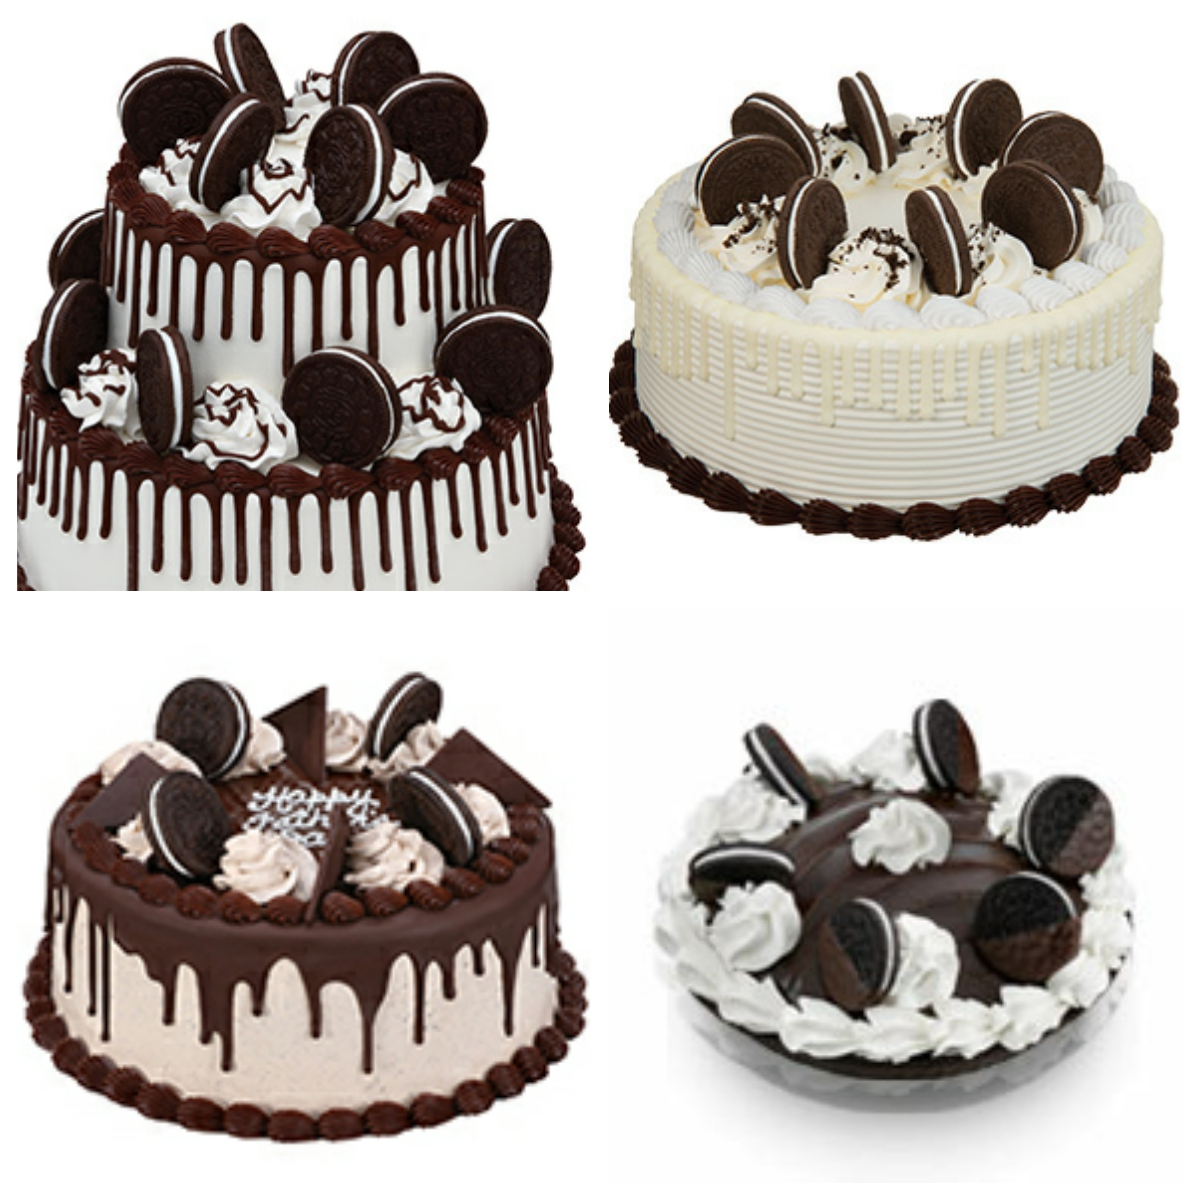 How Much Are Baskin Robbins Ice Cream Cakes